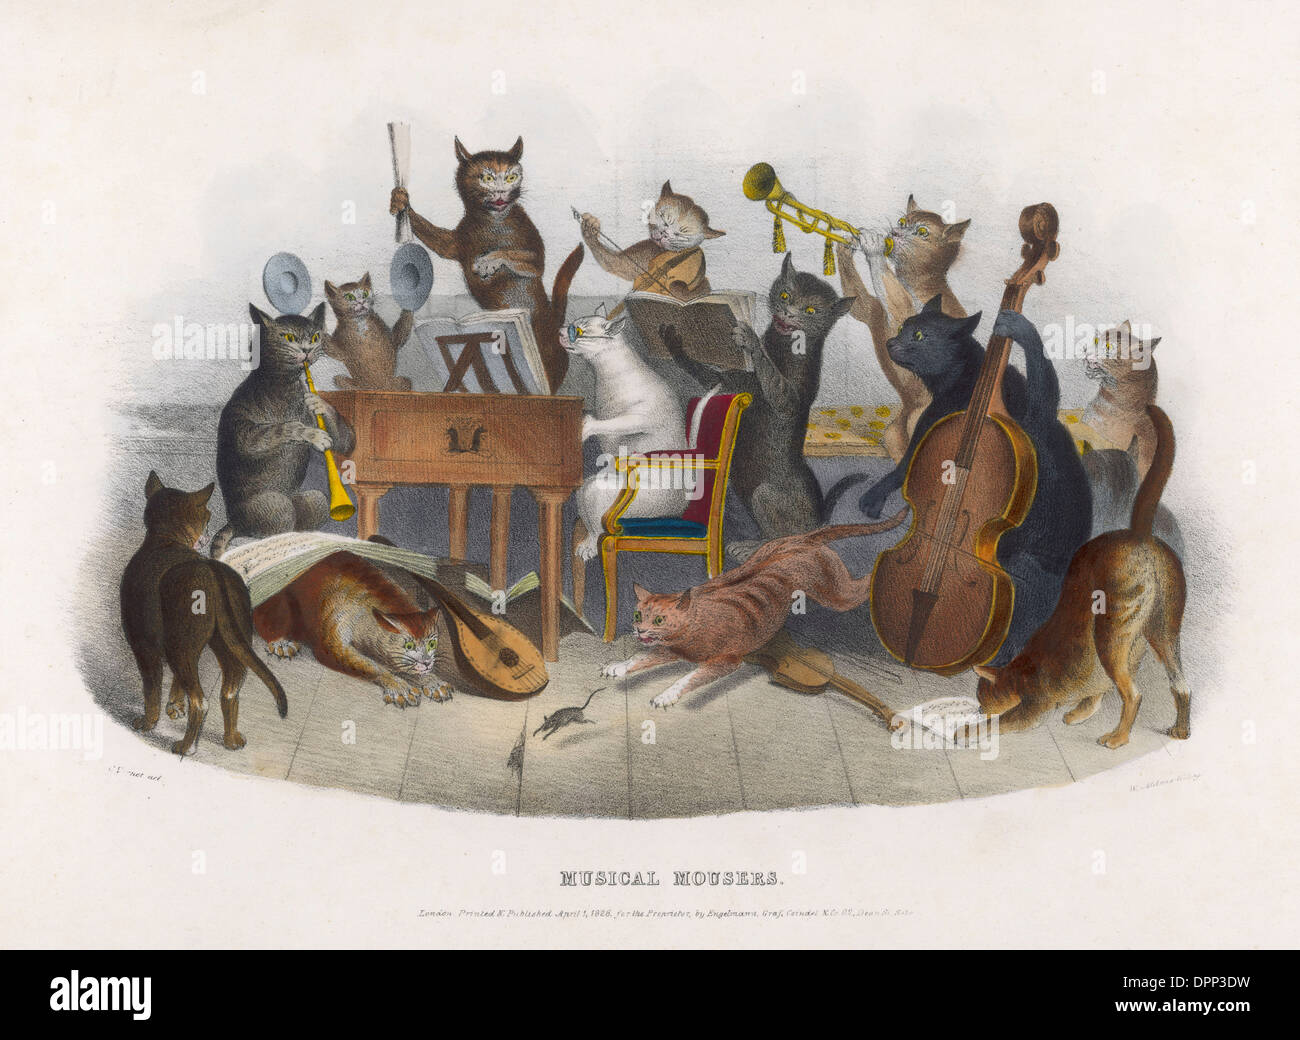 MUSICAL MOUSERS - Stock Image